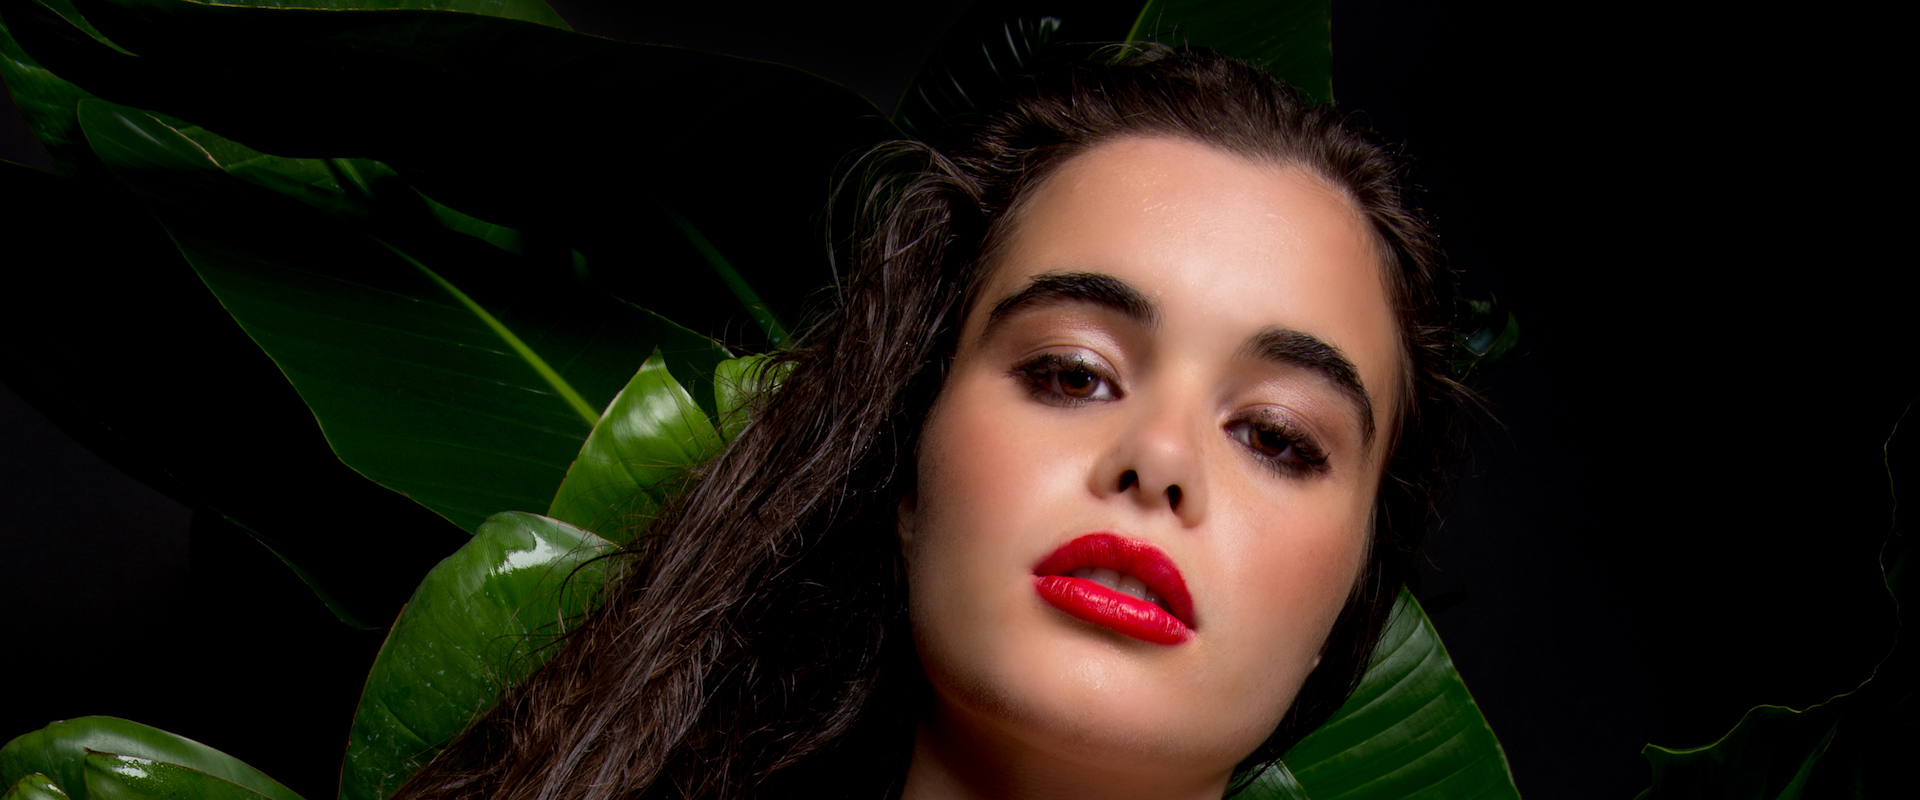 5 Reasons Why We Are In Love With Barbie Ferreira